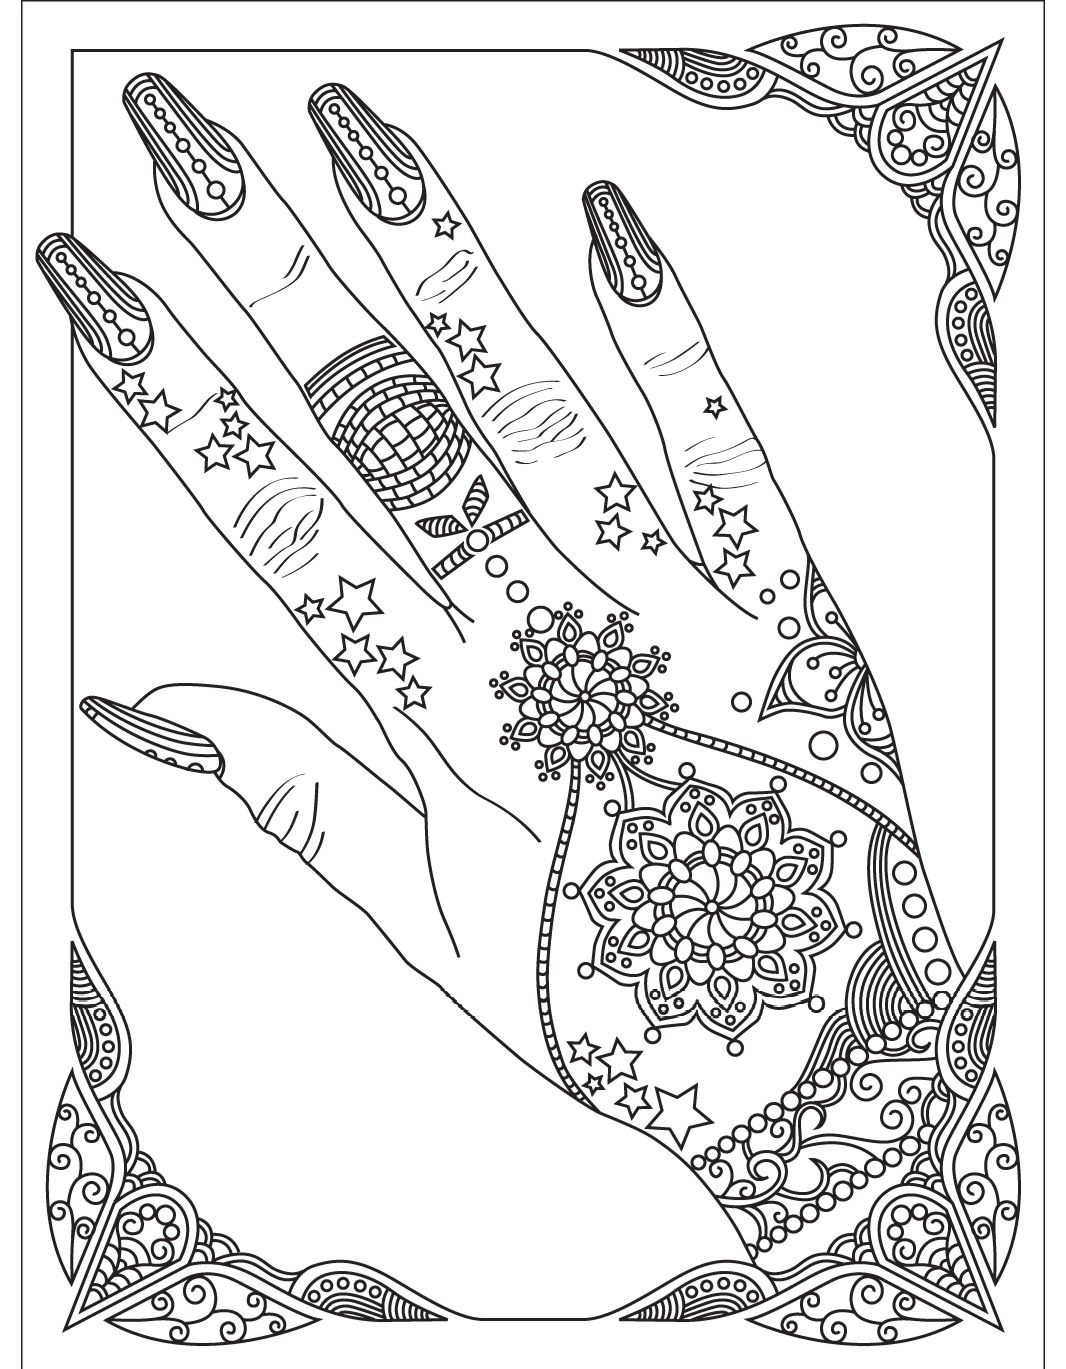 Nails Colorish Coloring Book App For Adults By Goodsofttech Coloring Book App Coloring Books Cute Coloring Pages